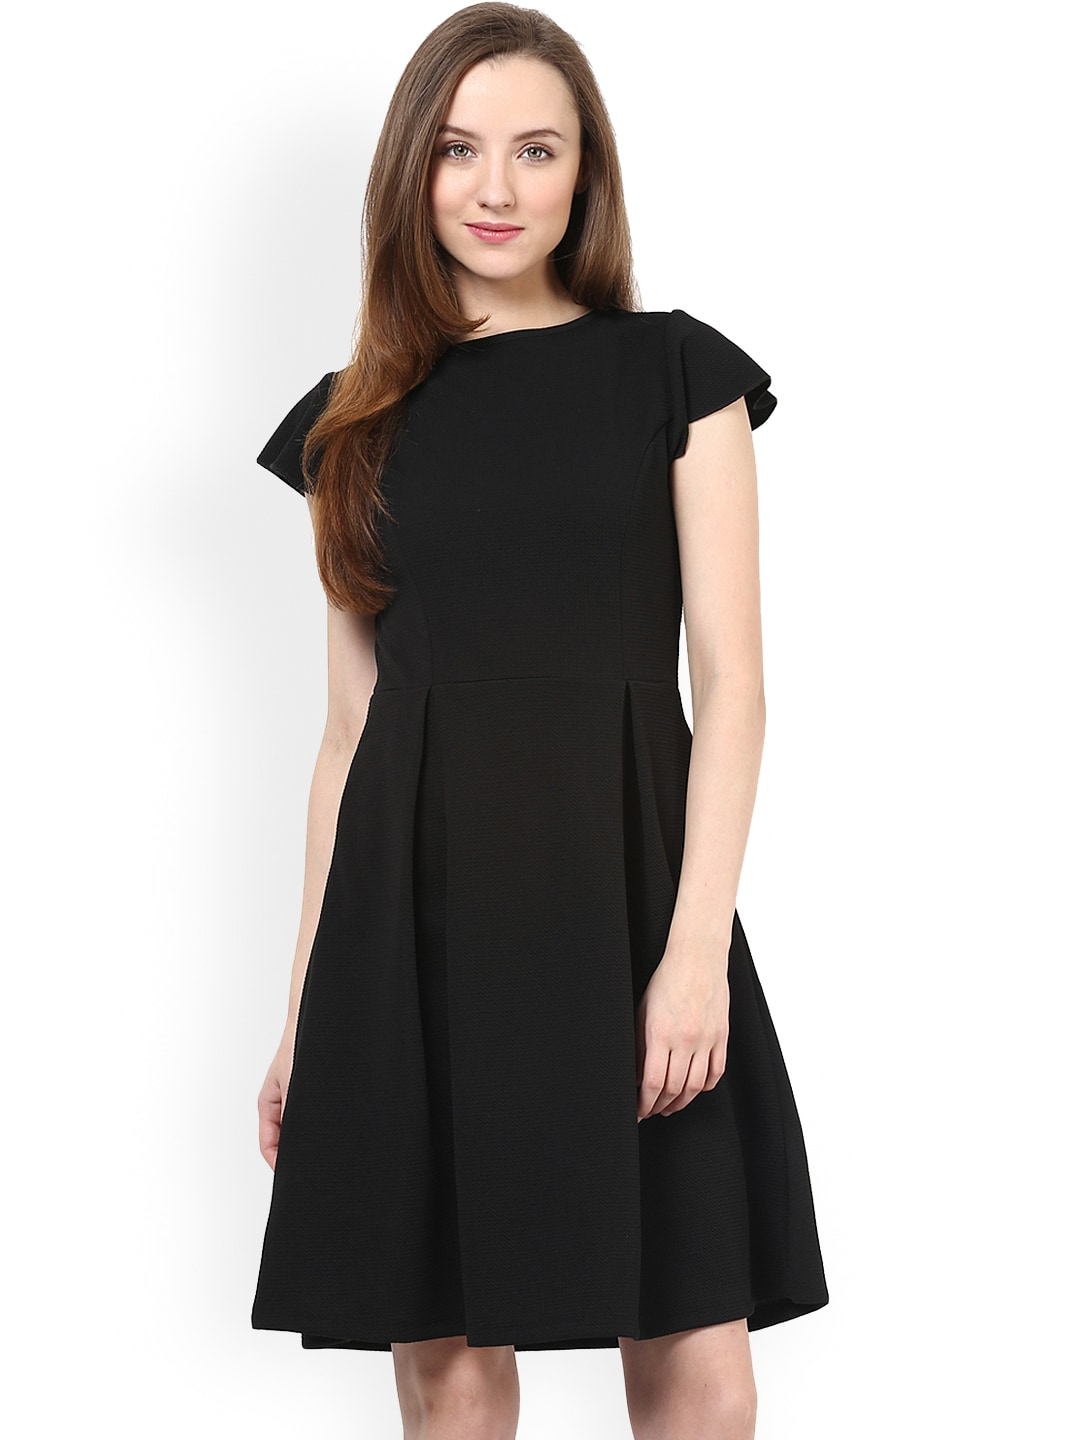 0a99a351e0 Black Dress - Buy Black Dresses For Women in India